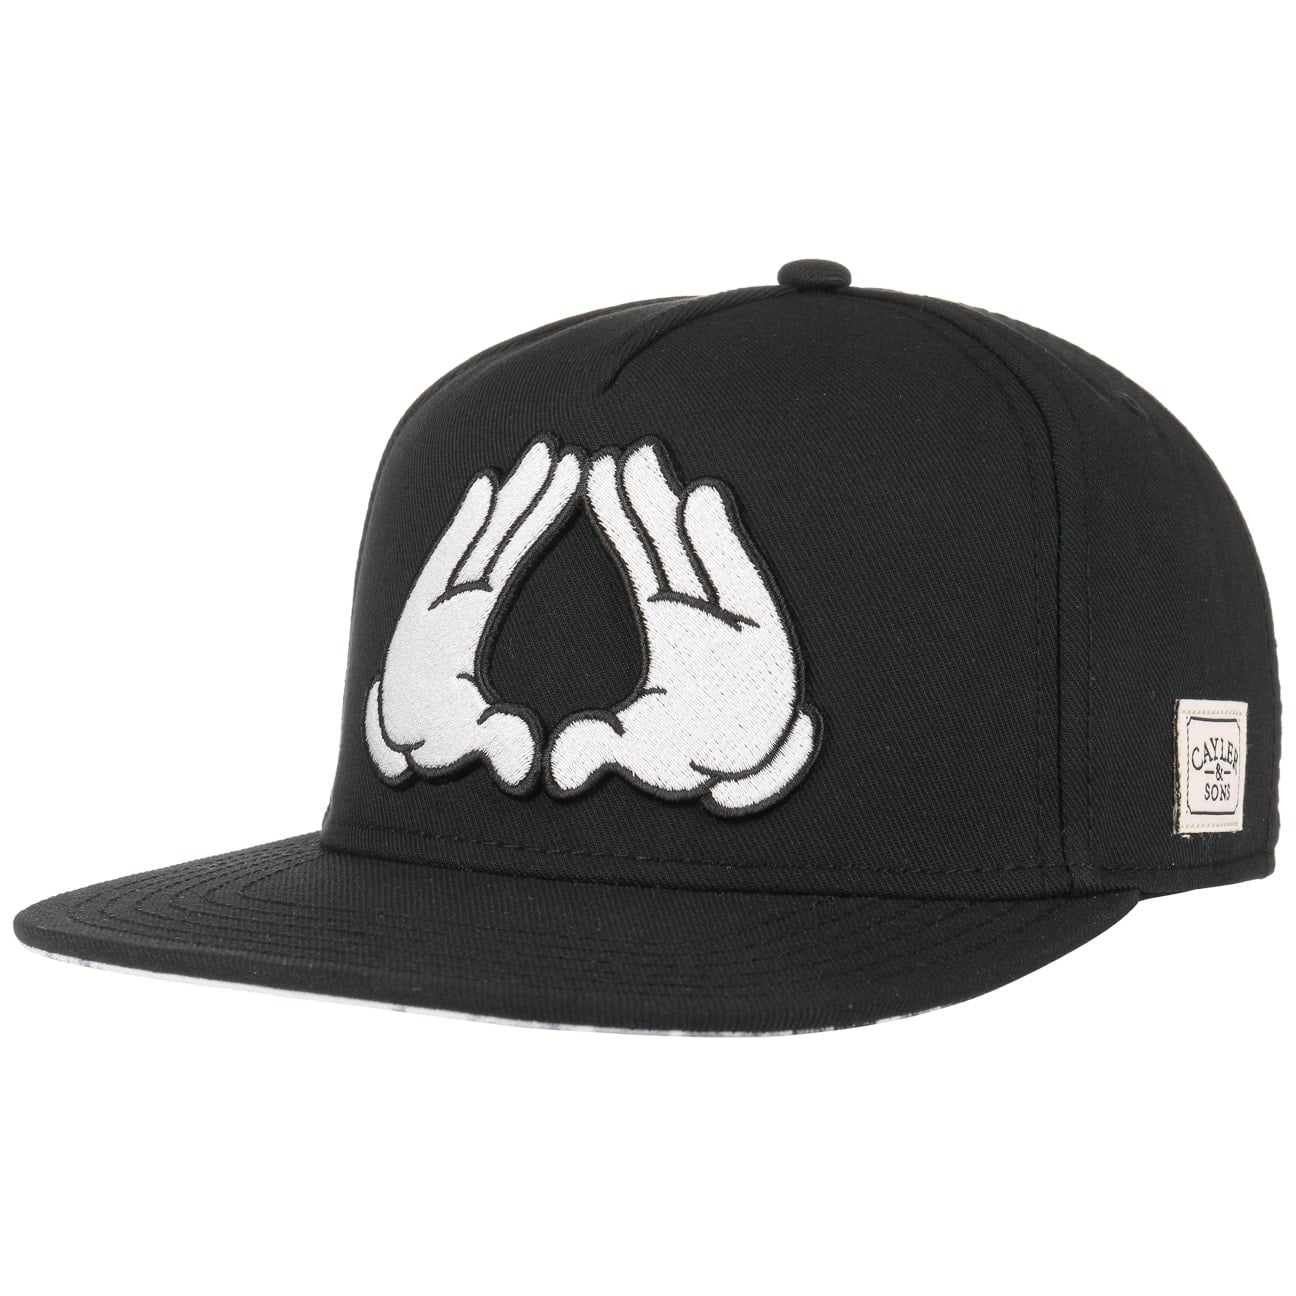 Gorra Brooklyn Classic by Cayler & Sons  gorra de baseball